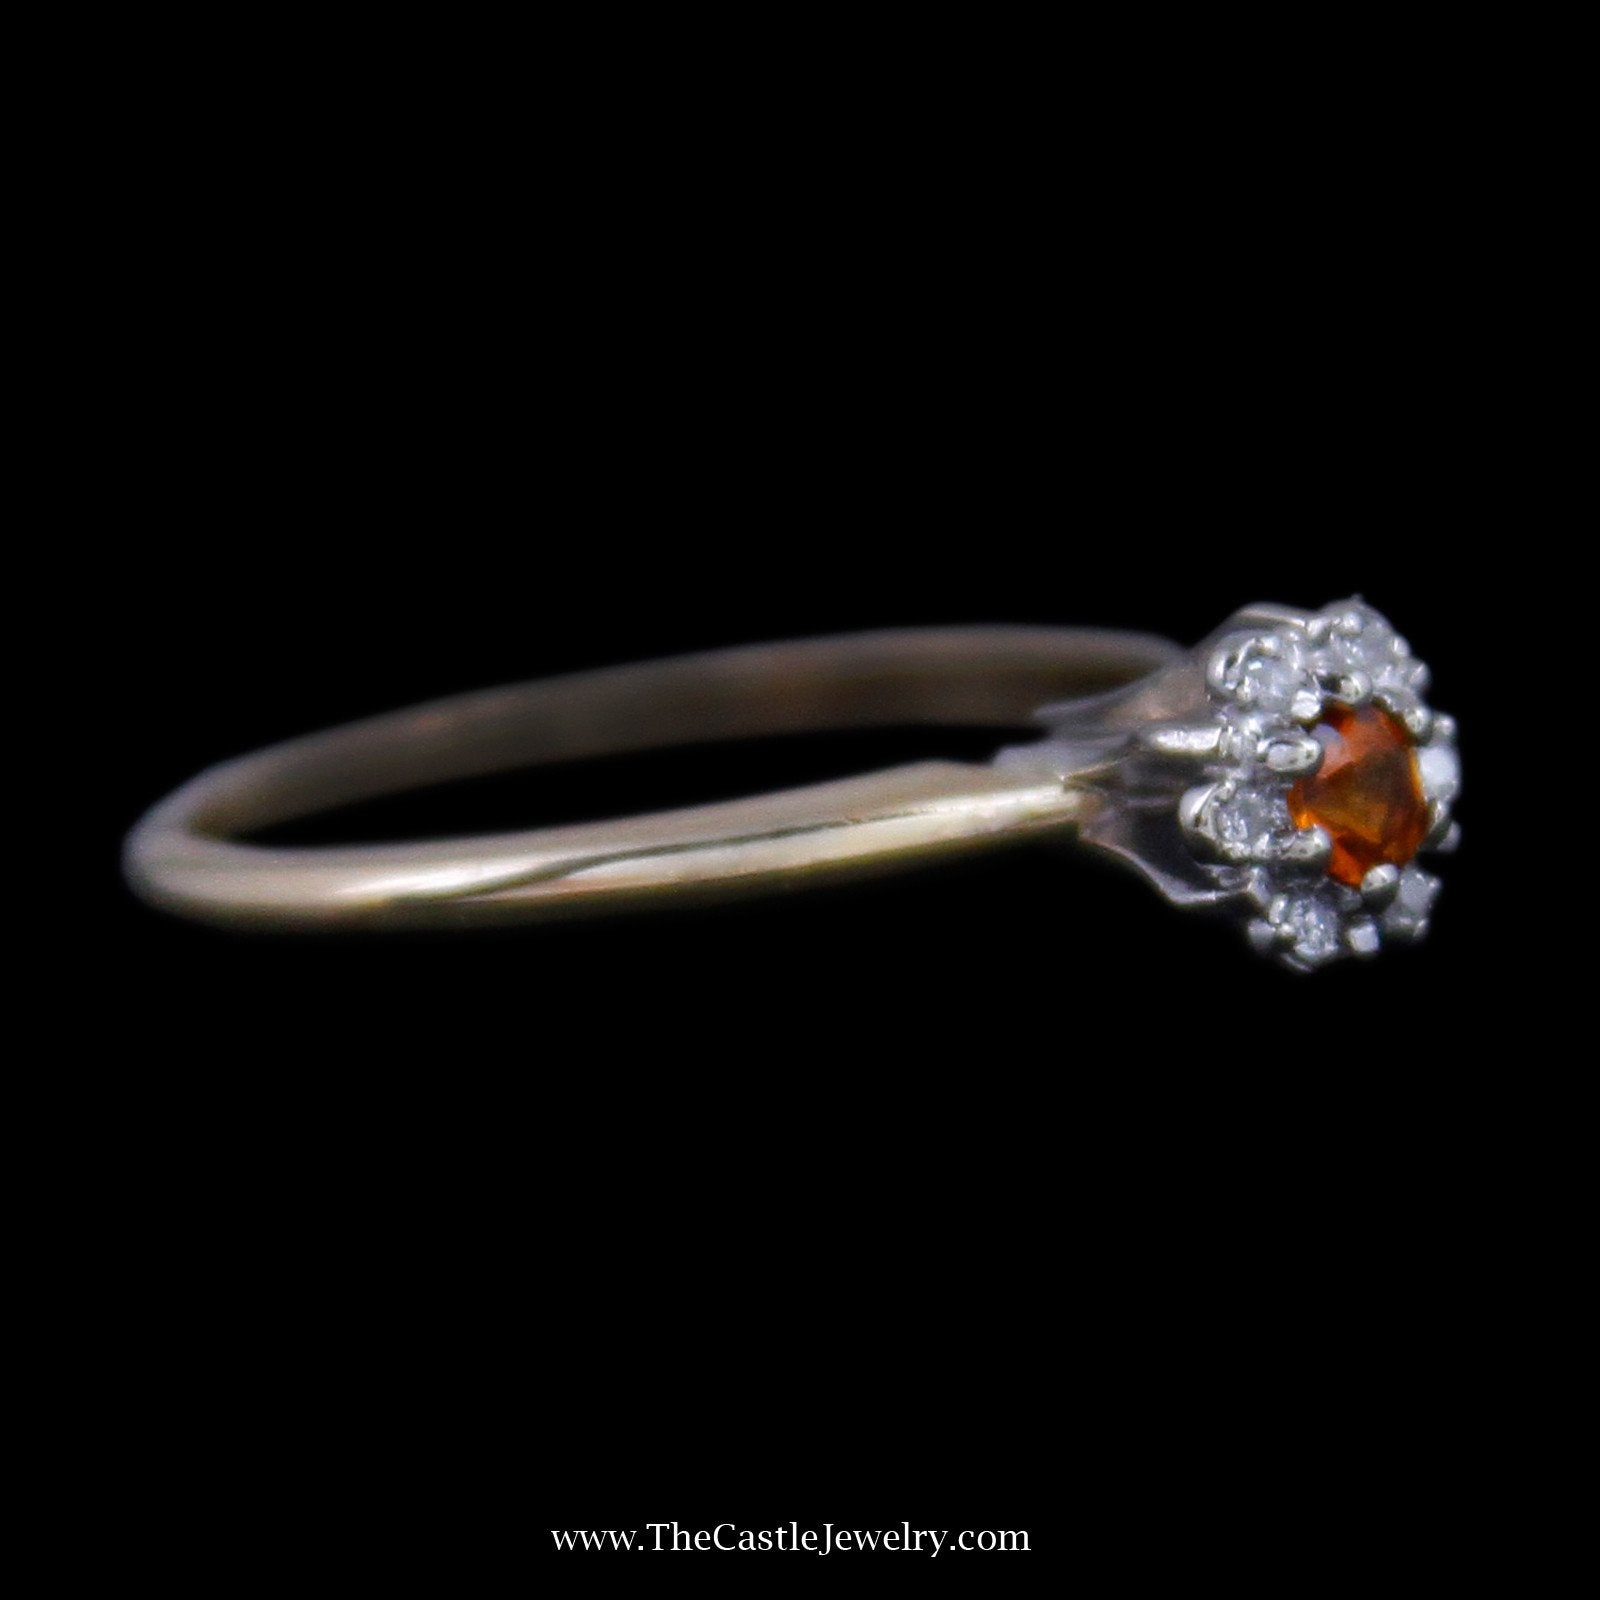 Charming Round Citrine Ring with Round Brilliant Cut Diamond Halo in 14K Yellow Gold